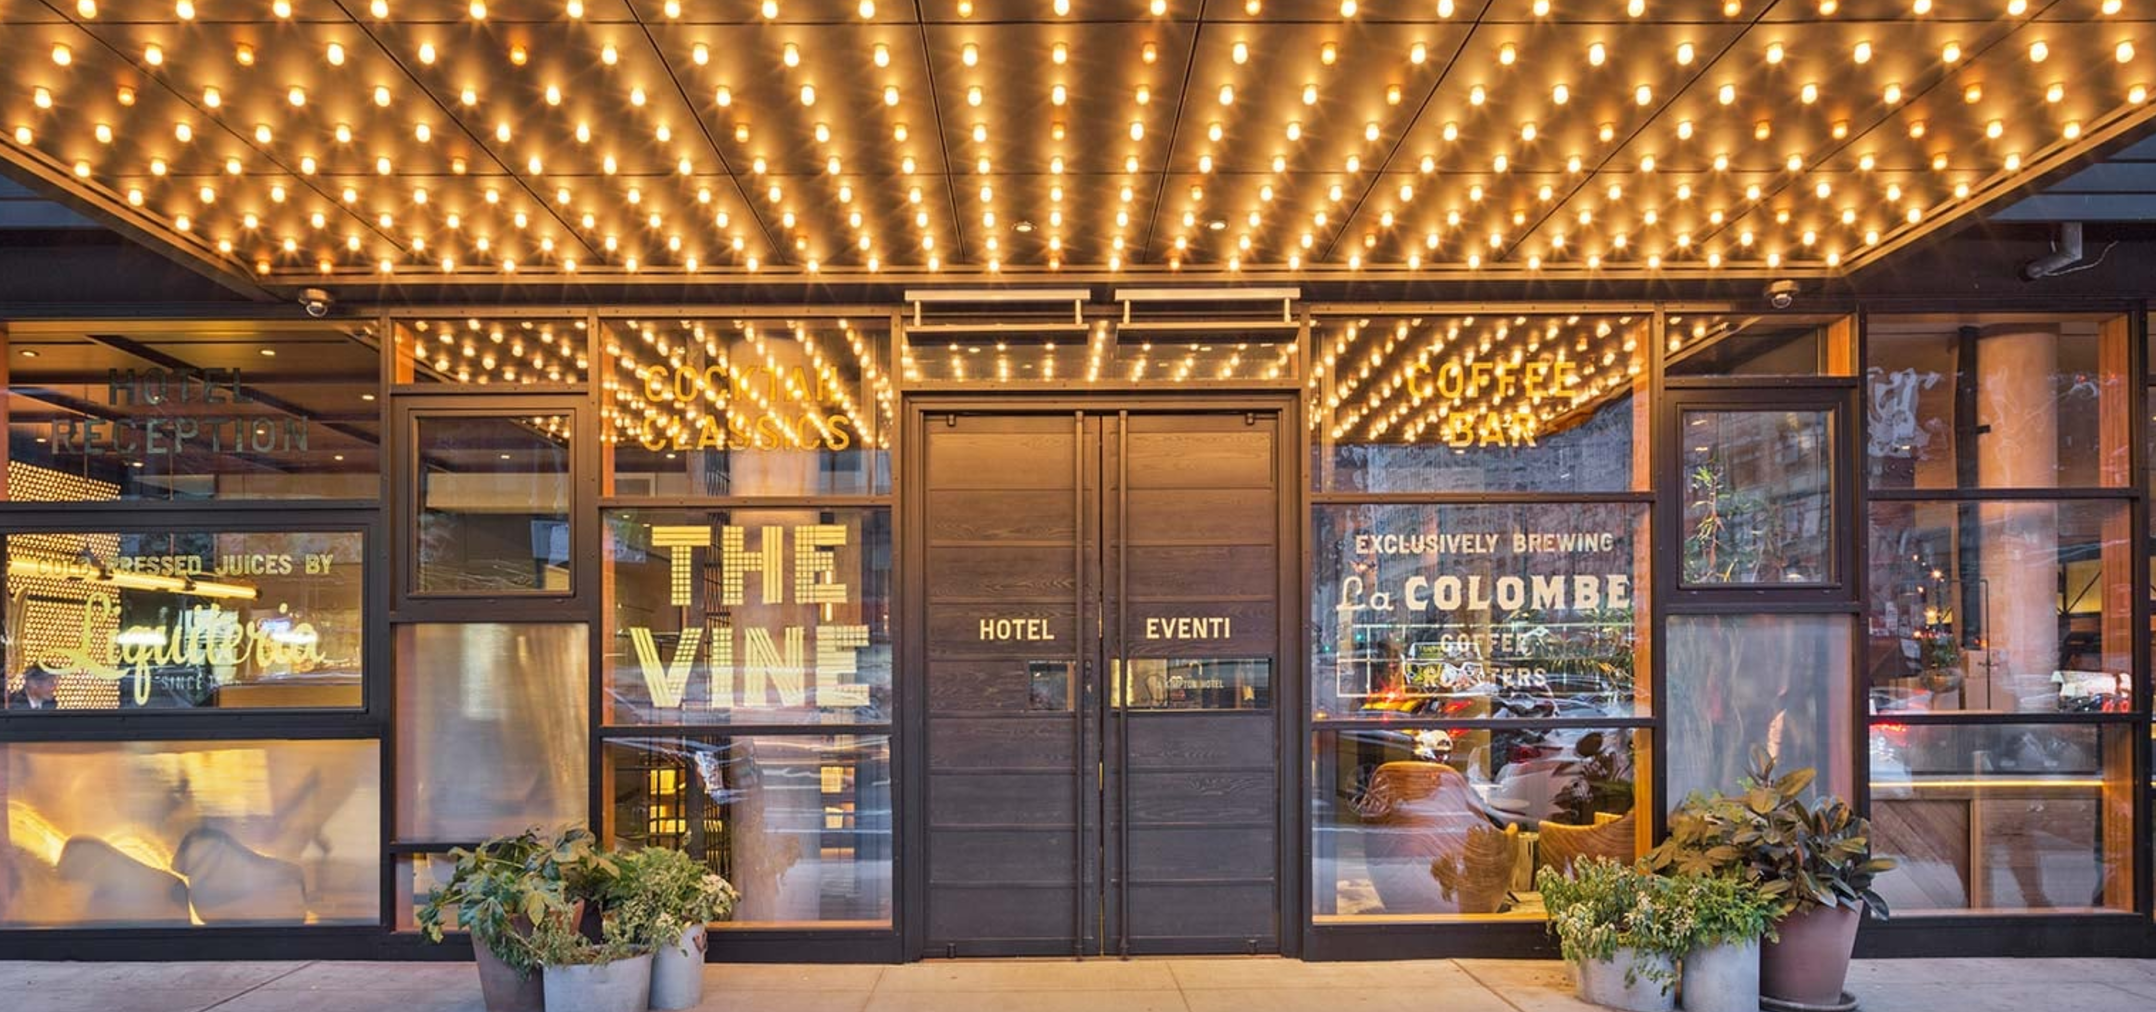 New York: The Vine is not your average hotel lounge